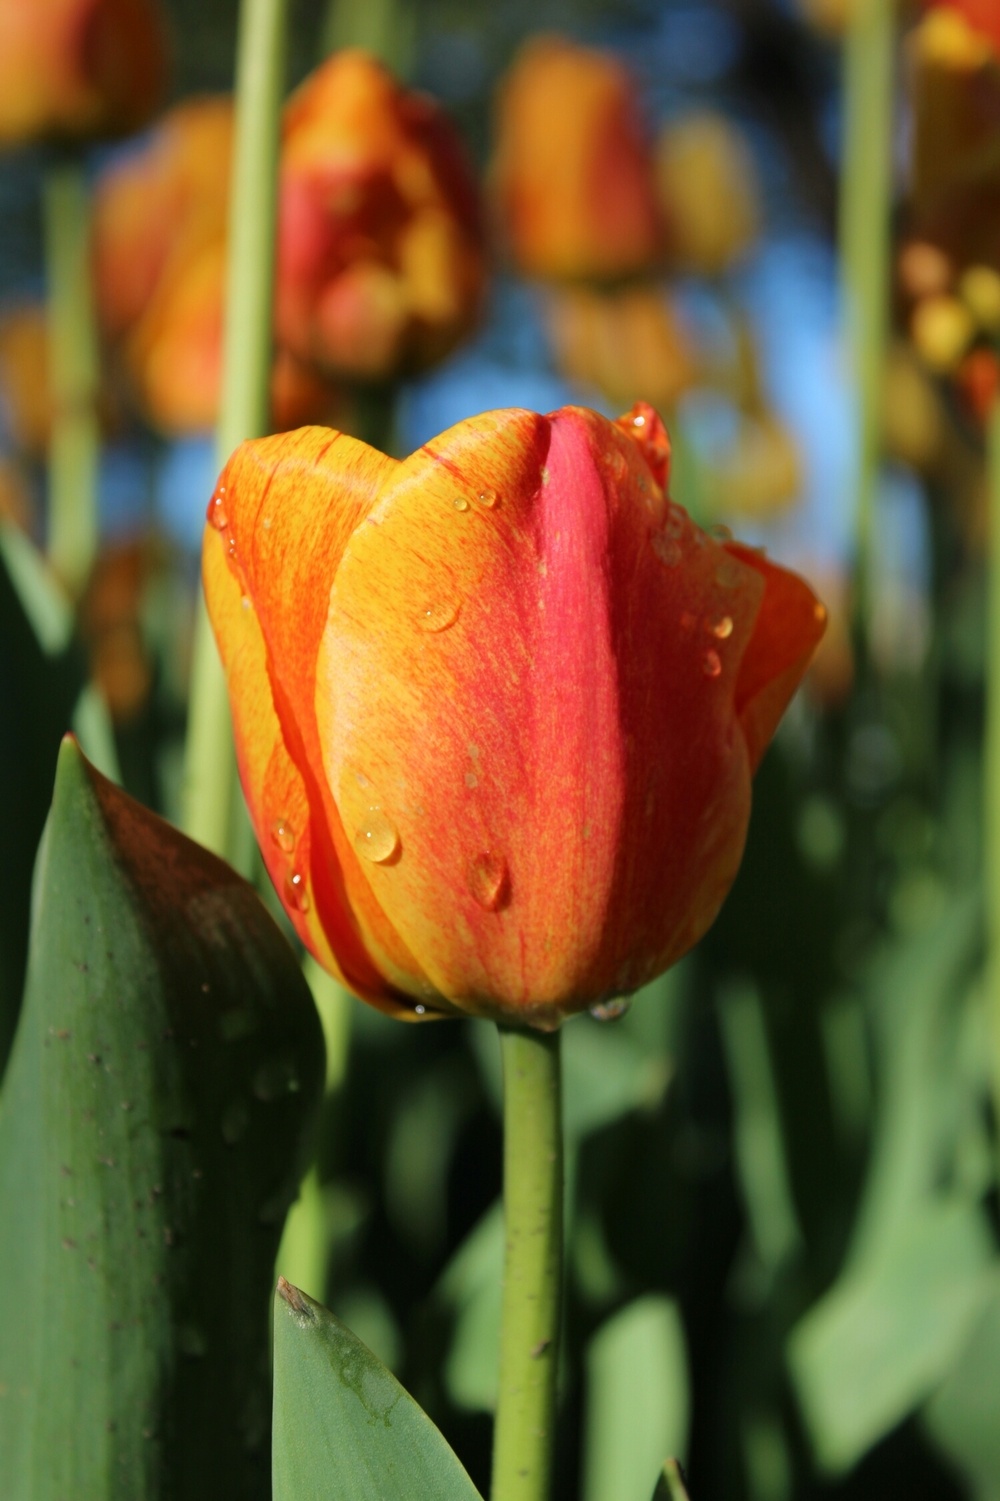 There were tulips in Holland